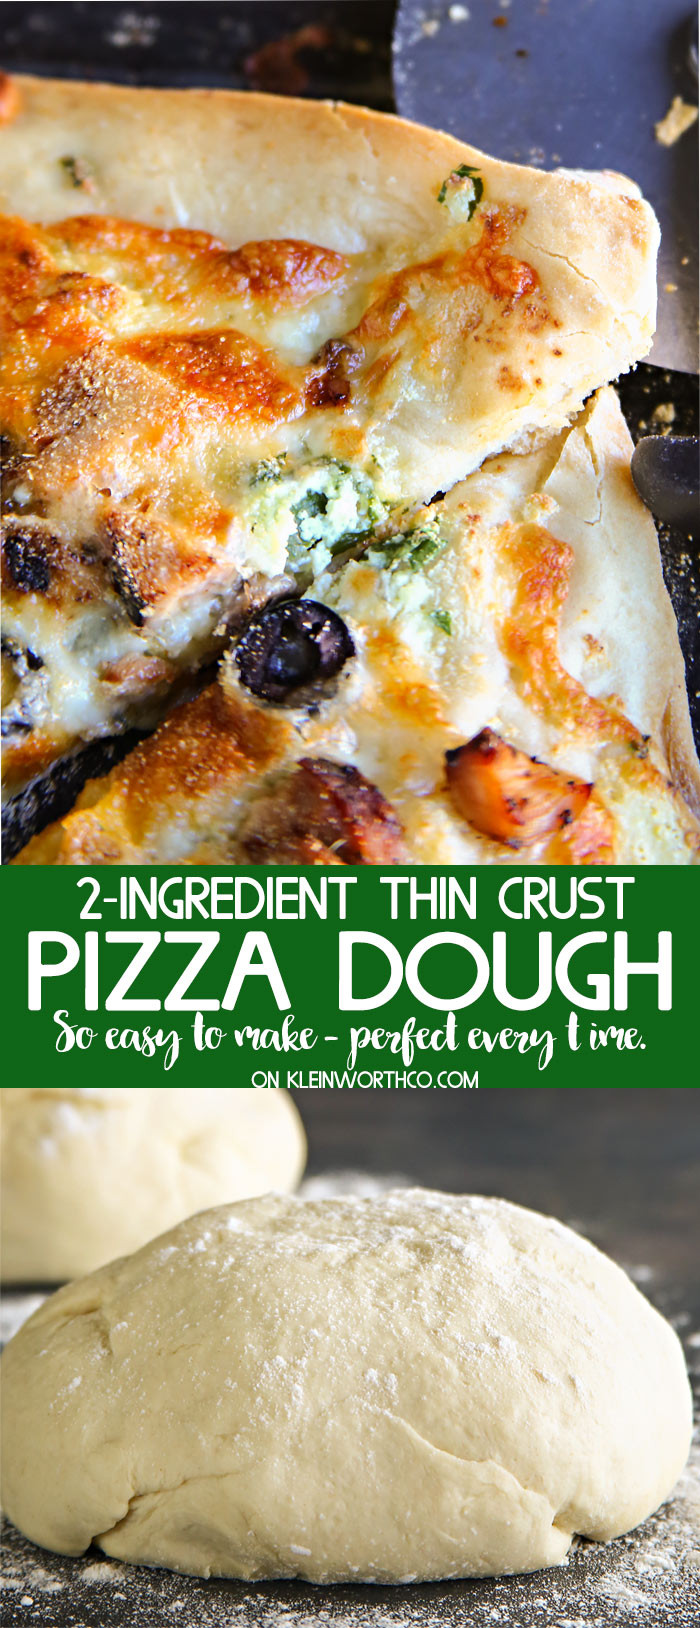 2 Ingredient Pizza Dough  Easy 2 Ingre nt Pizza Dough Kleinworth & Co